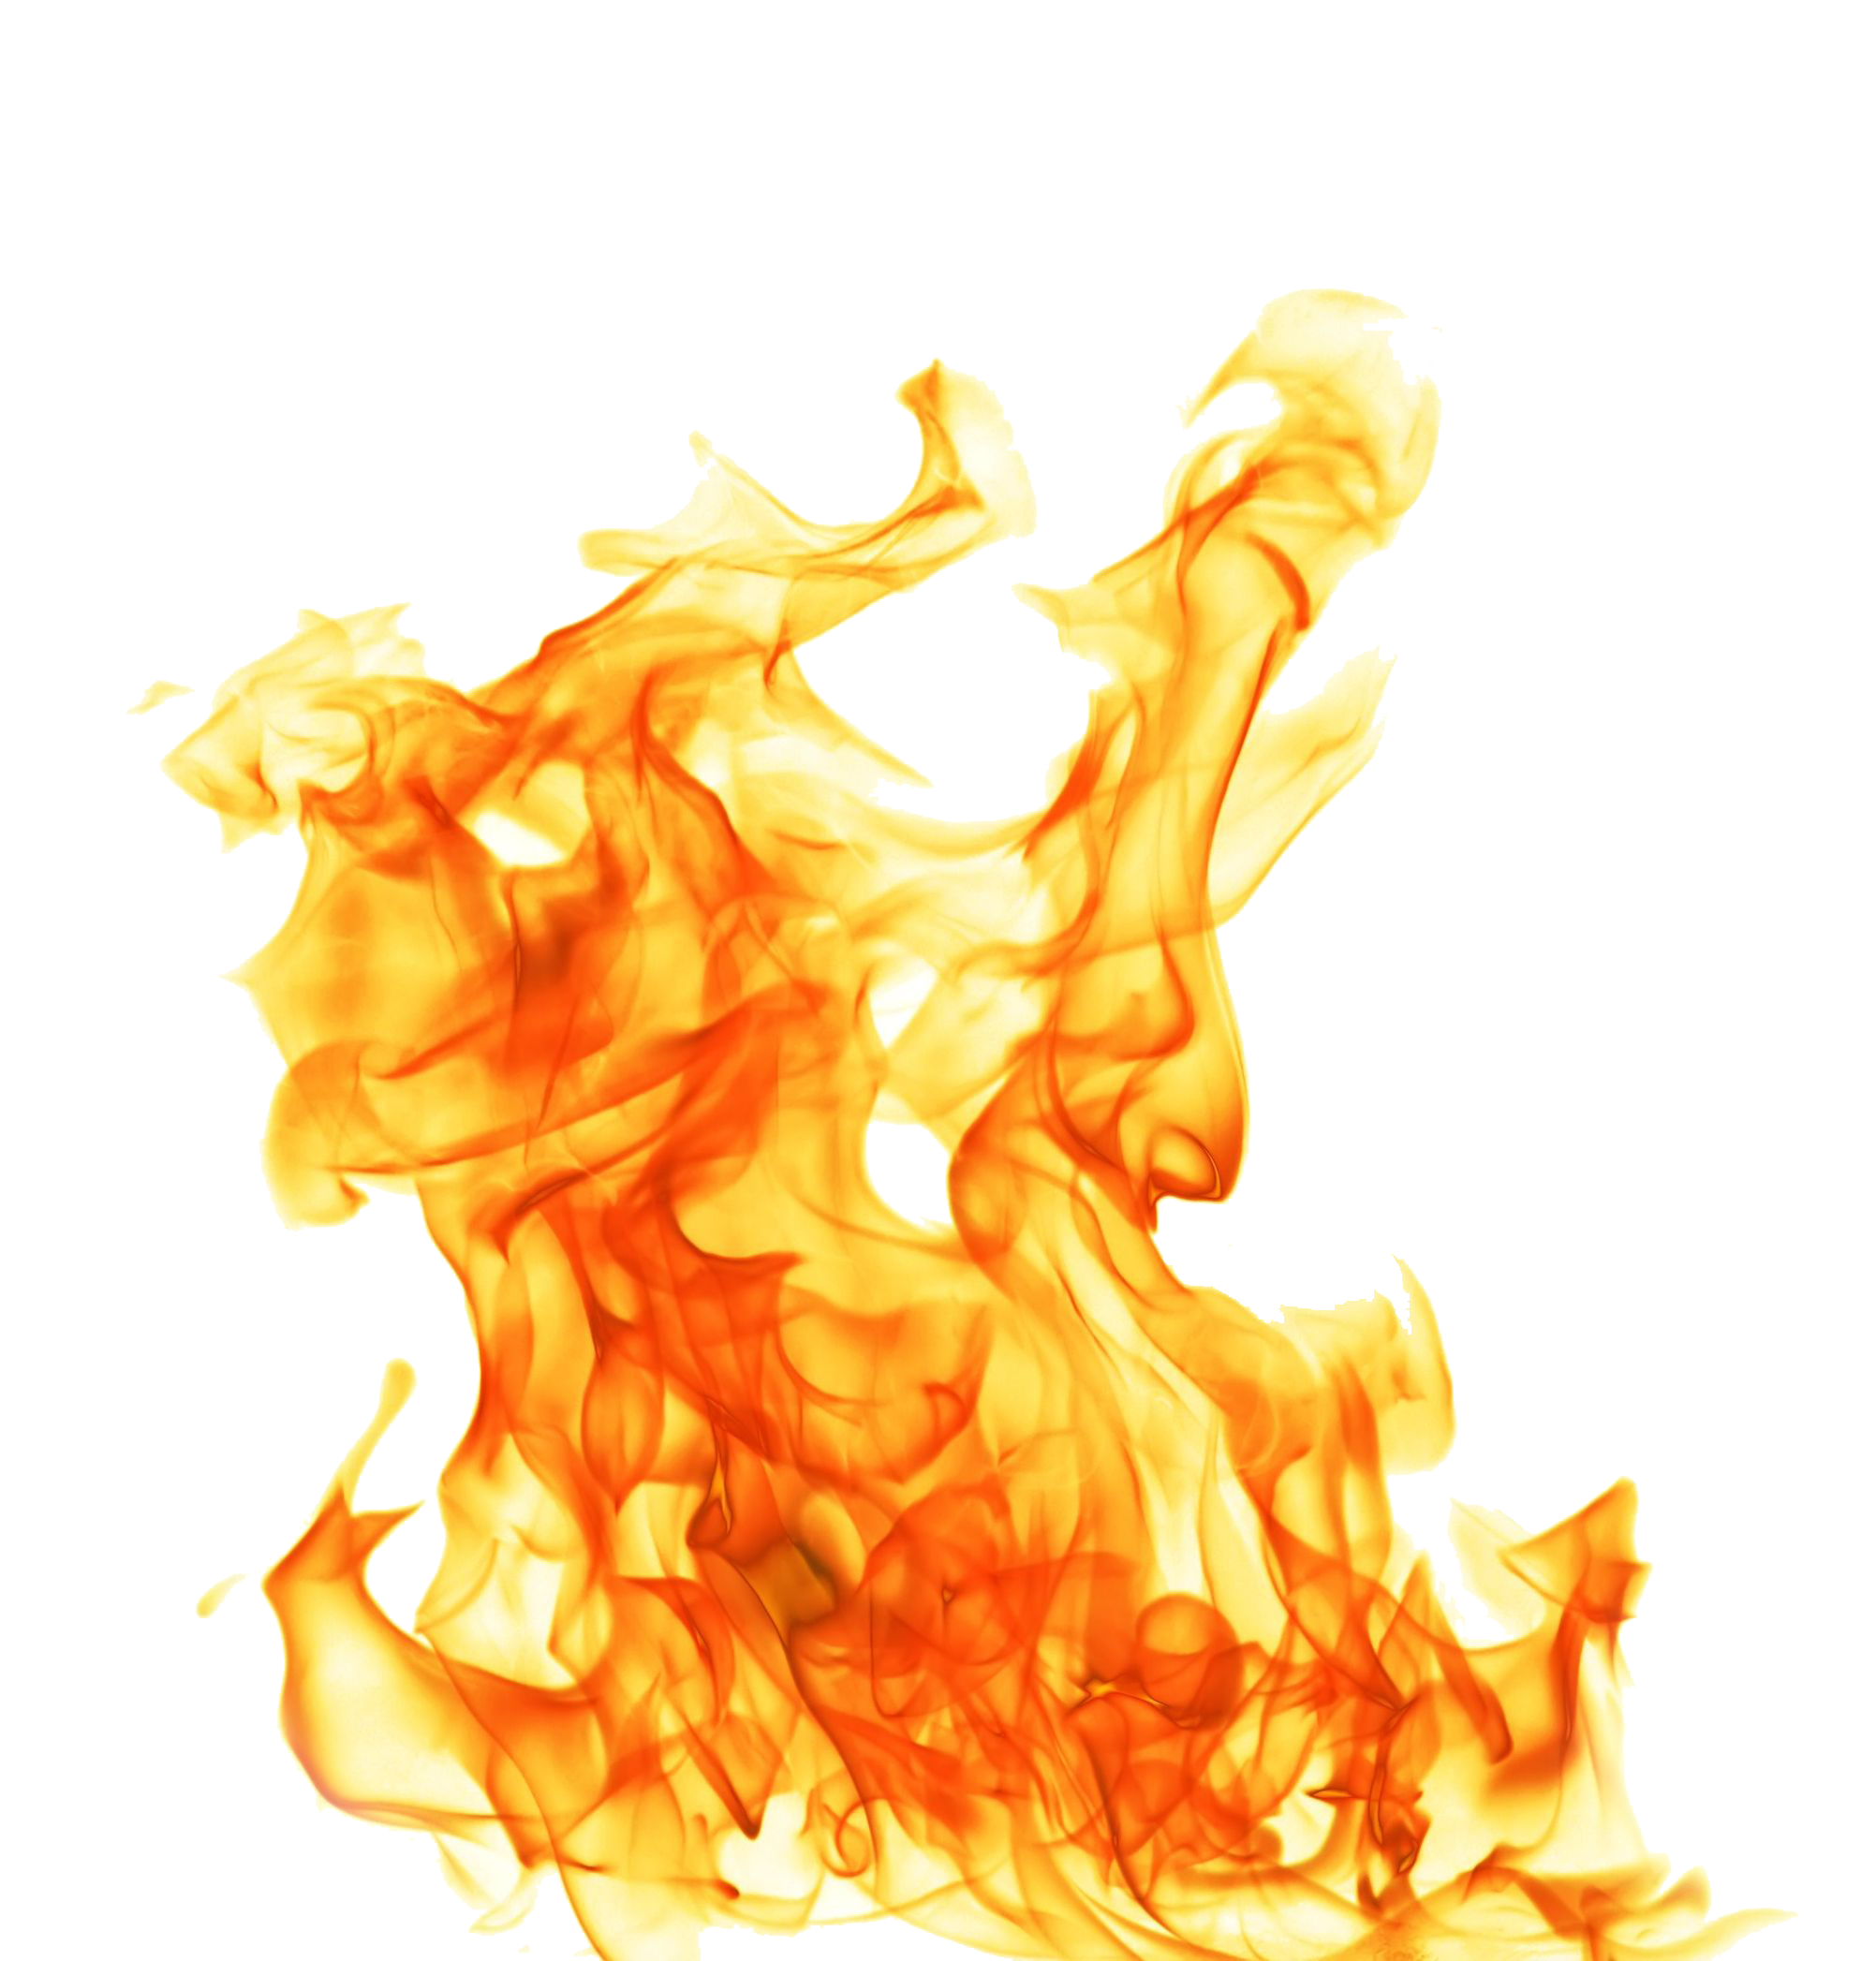 Fire Png images collection for free download.